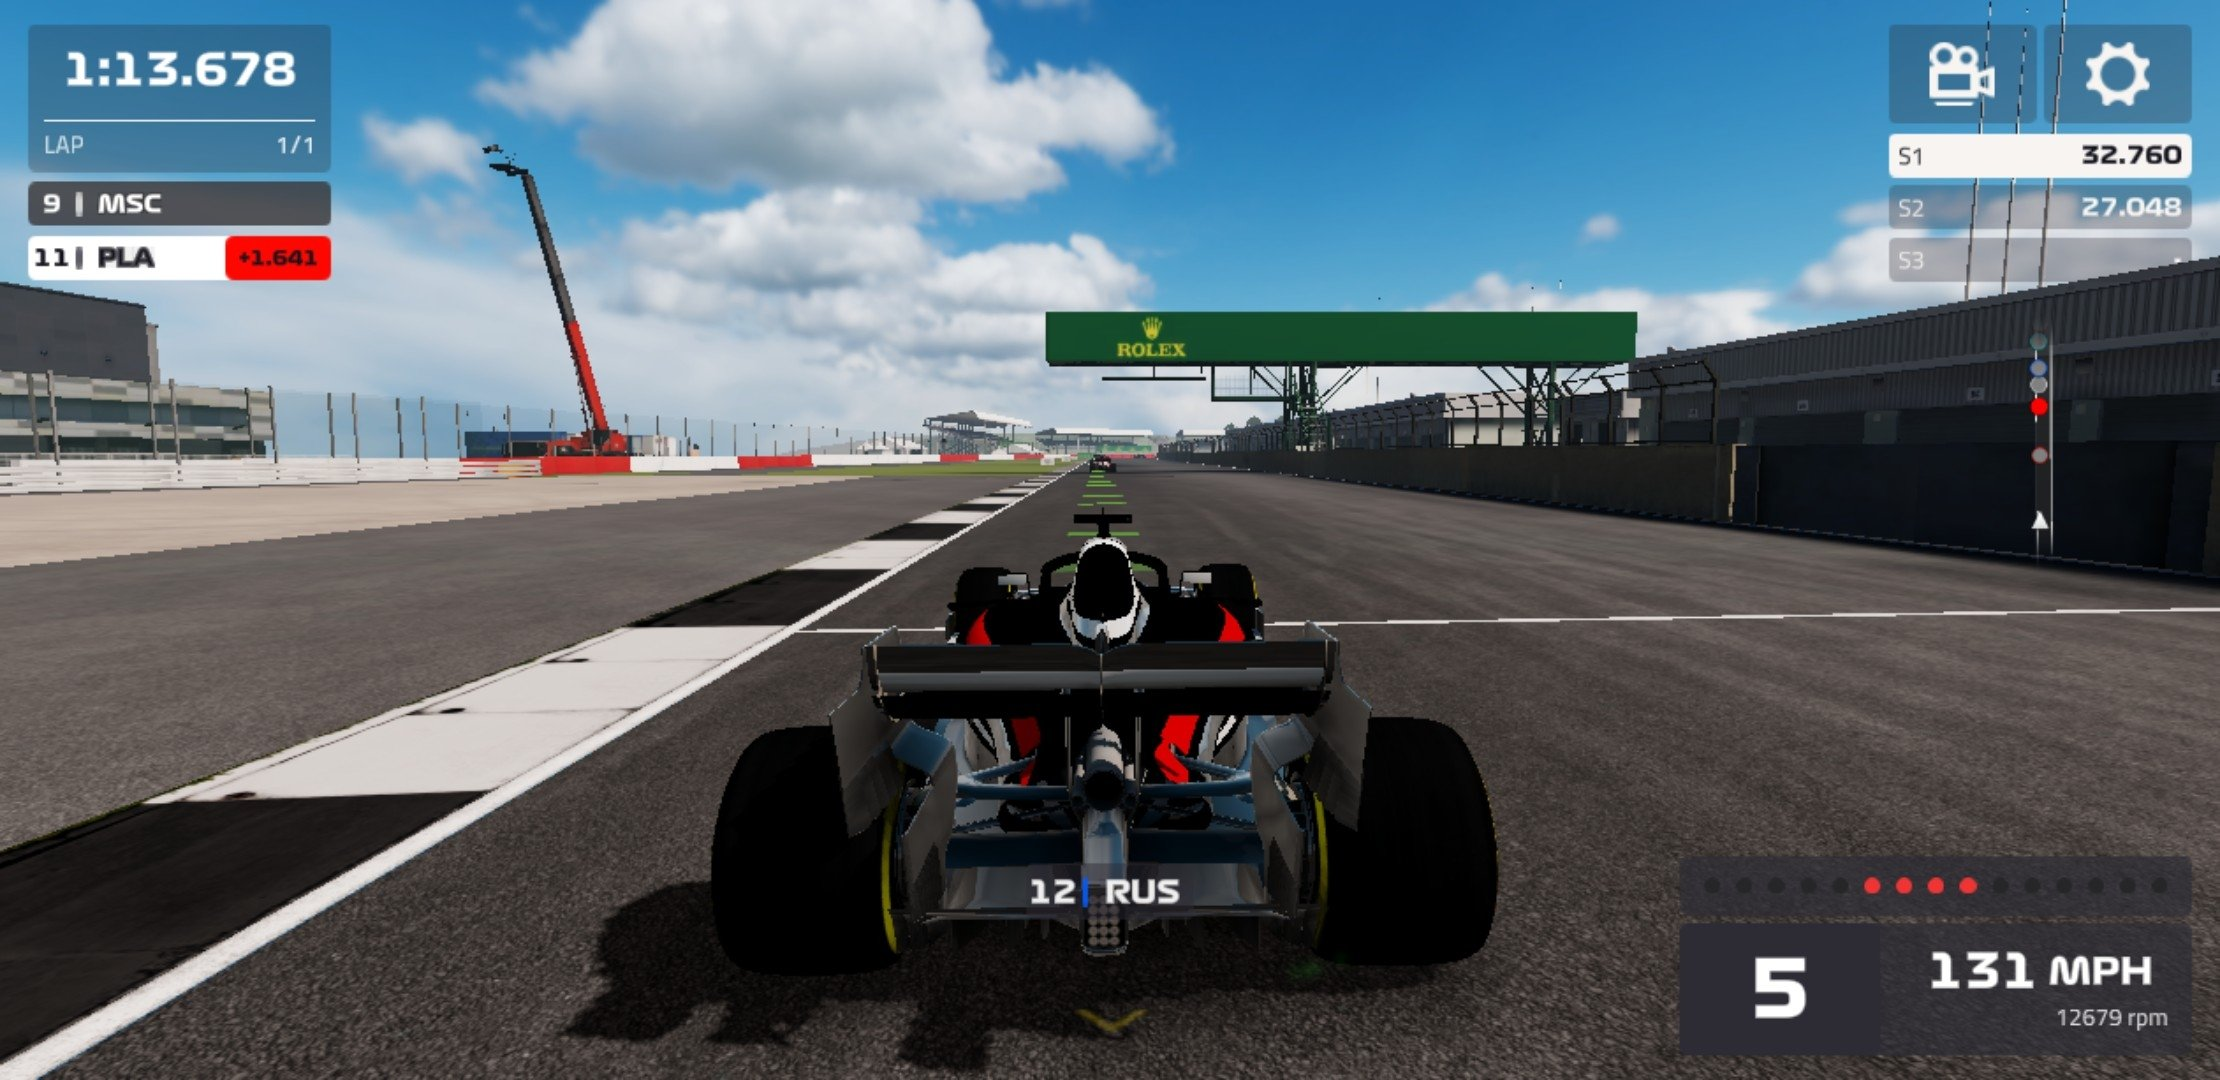 F1 Mobile Racing 1 15 6 - Download for Android APK Free